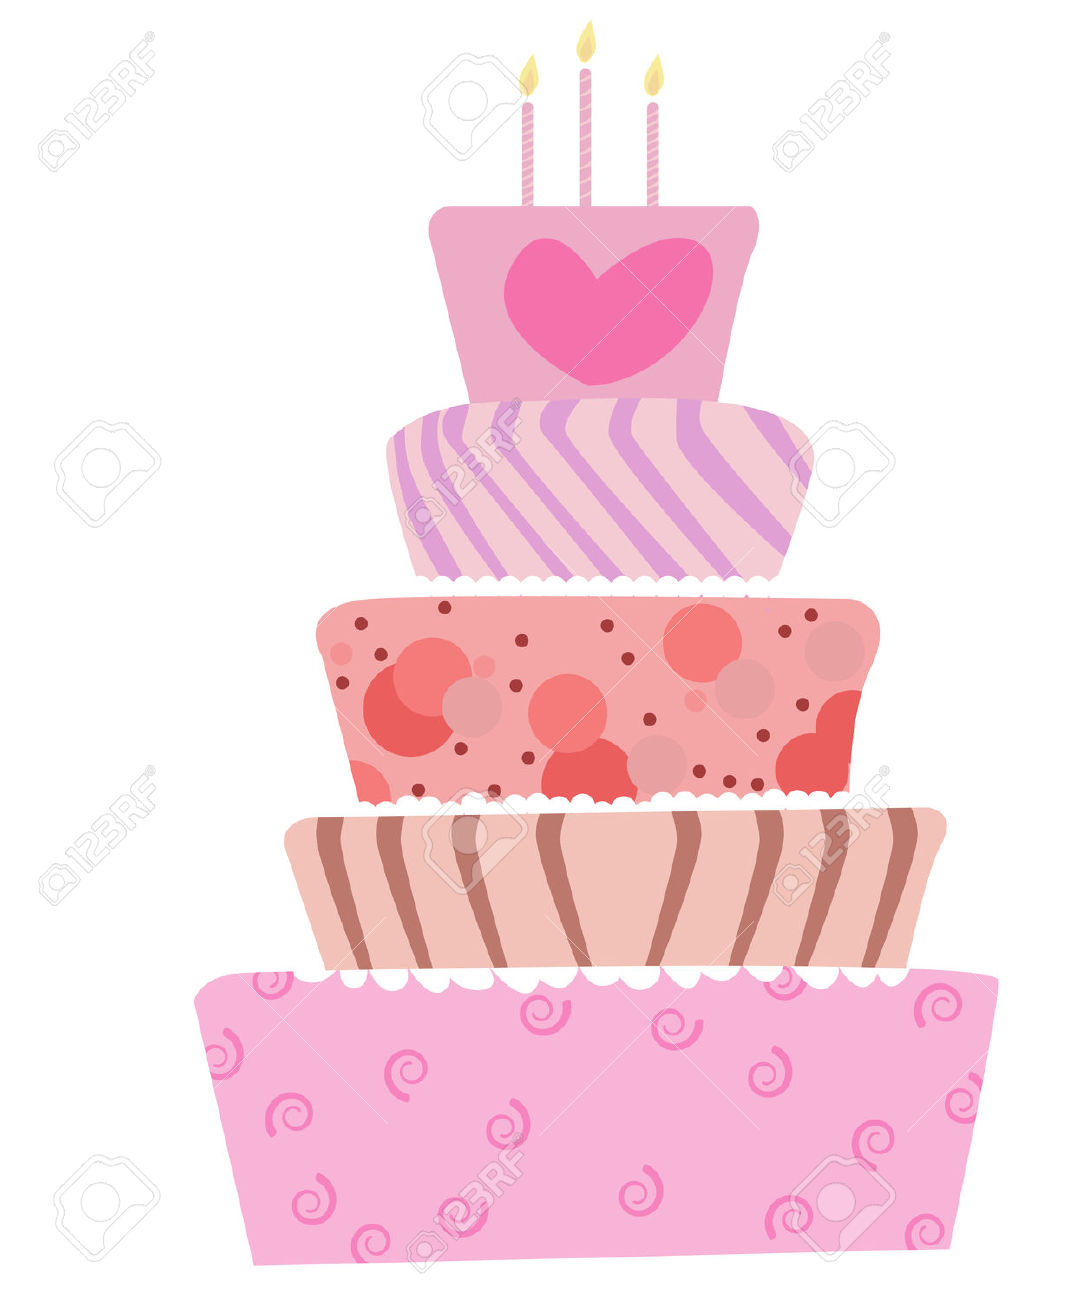 Wedding Cake clipart cute cake A Or Cute clipart Wedding